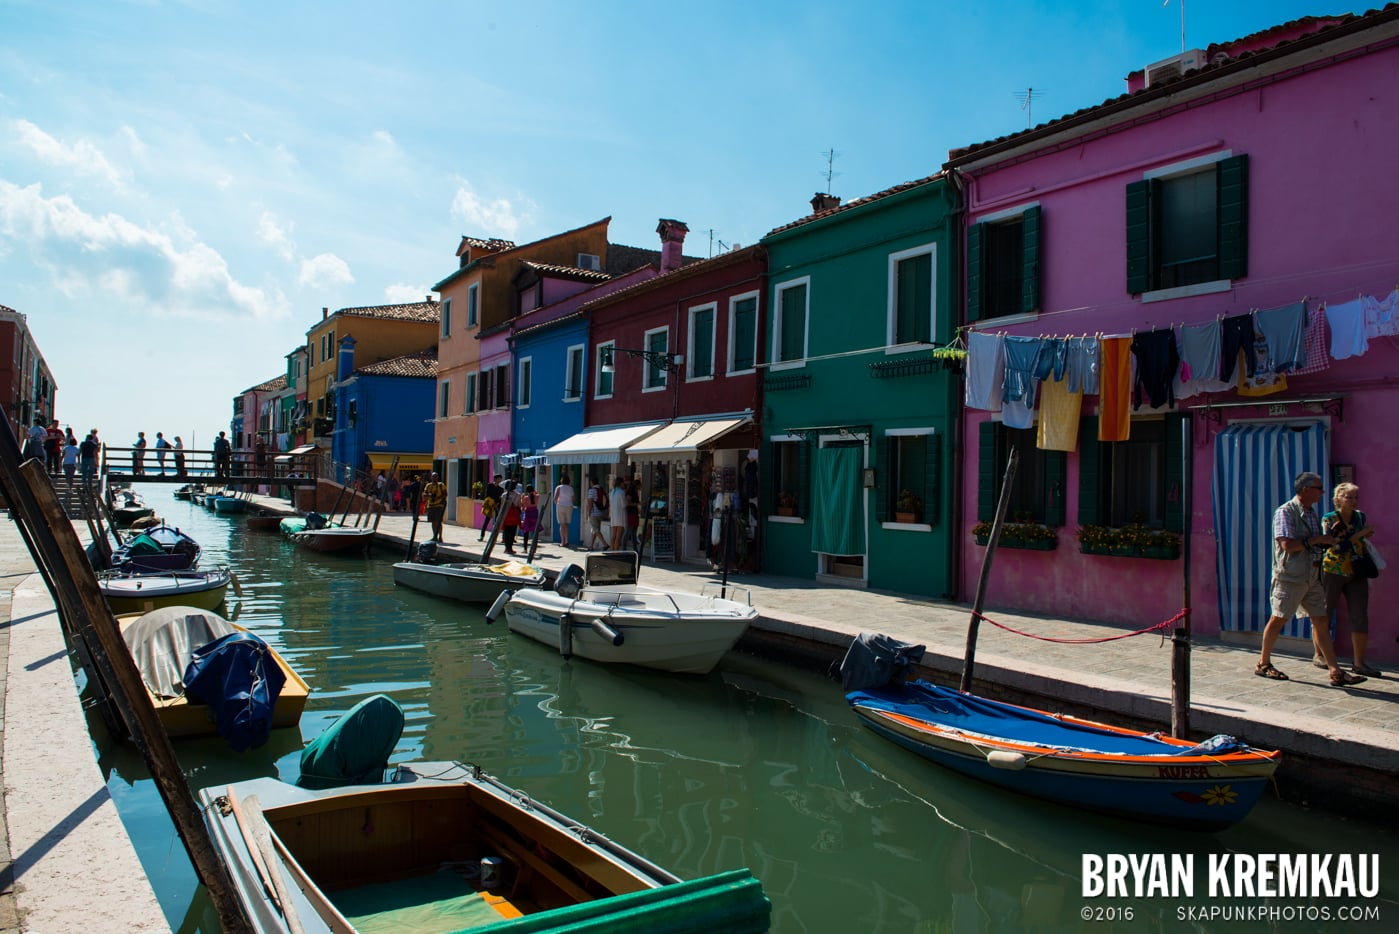 Italy Vacation - Day 6: Murano, Burano, Venice - 9.14.13 (31)